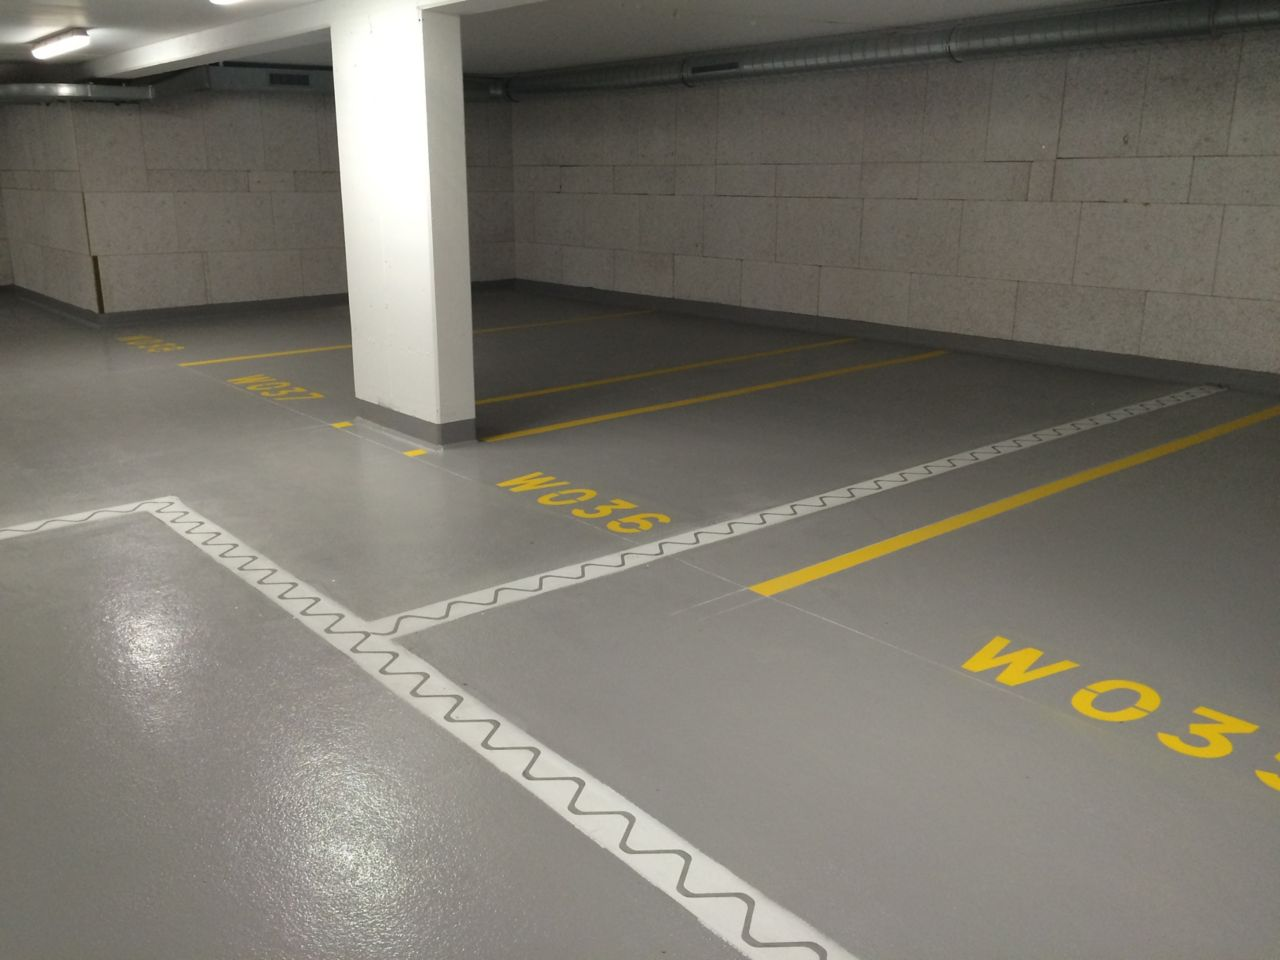 Sika FloorJoint concrete prefabricated panel installed in car park floor joint